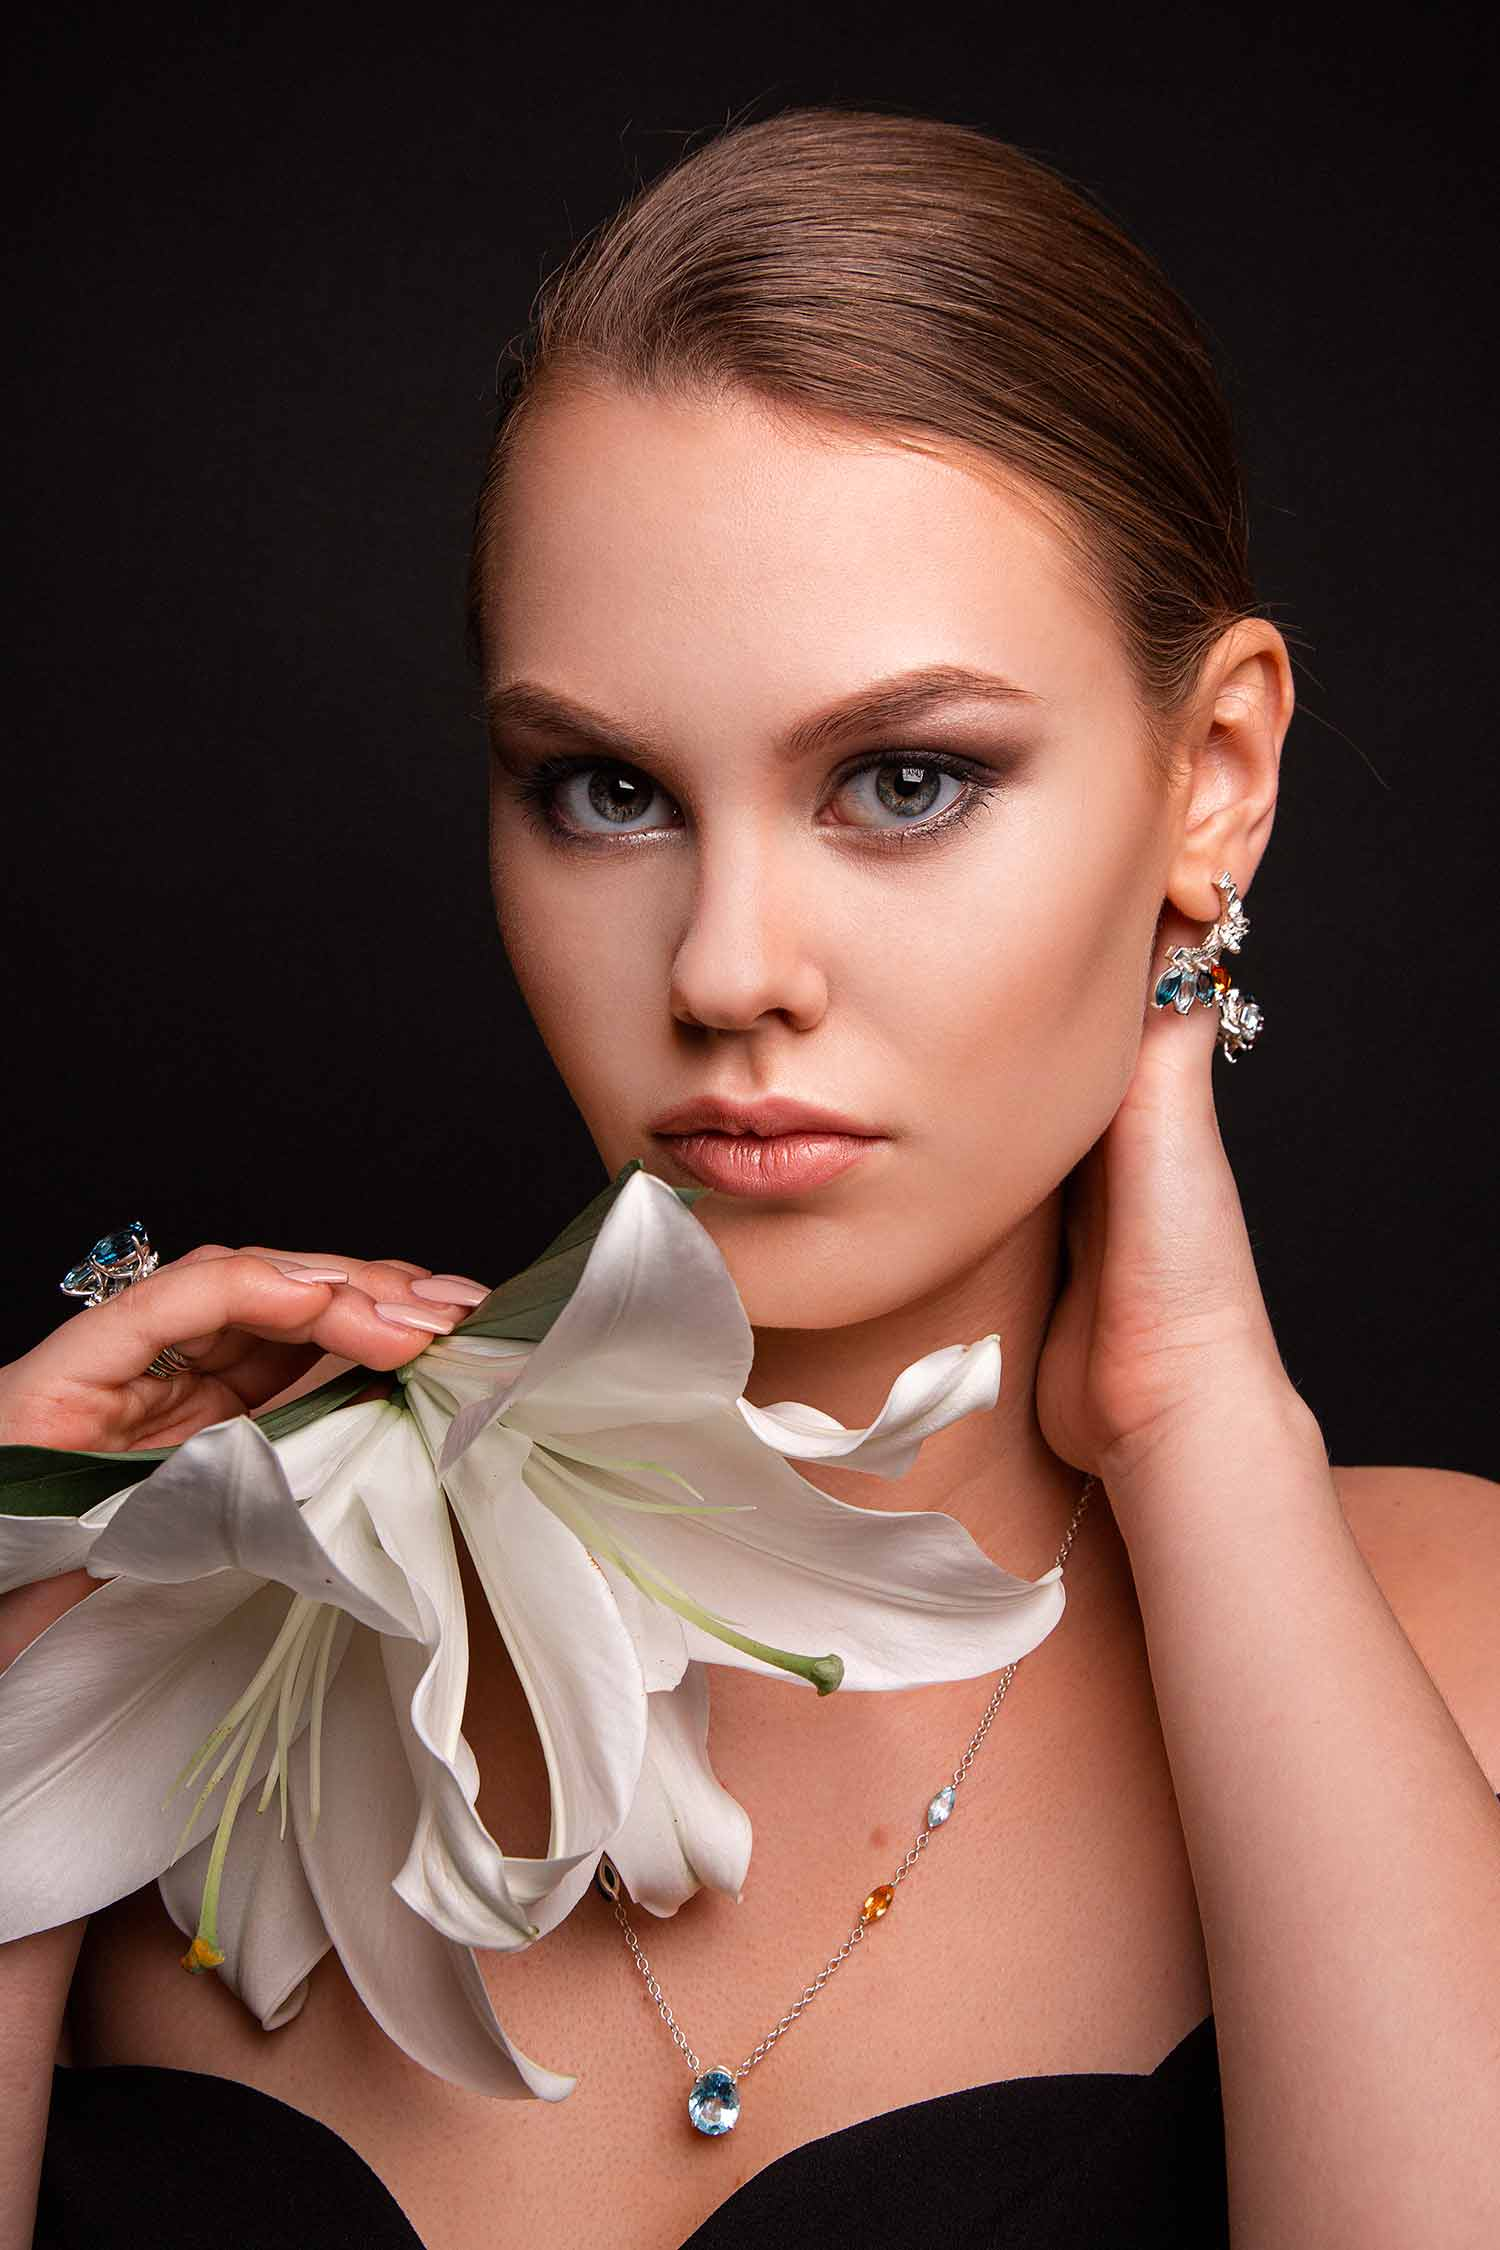 Model with lilies wearing Zydrune ethically made gemstone jewellery.